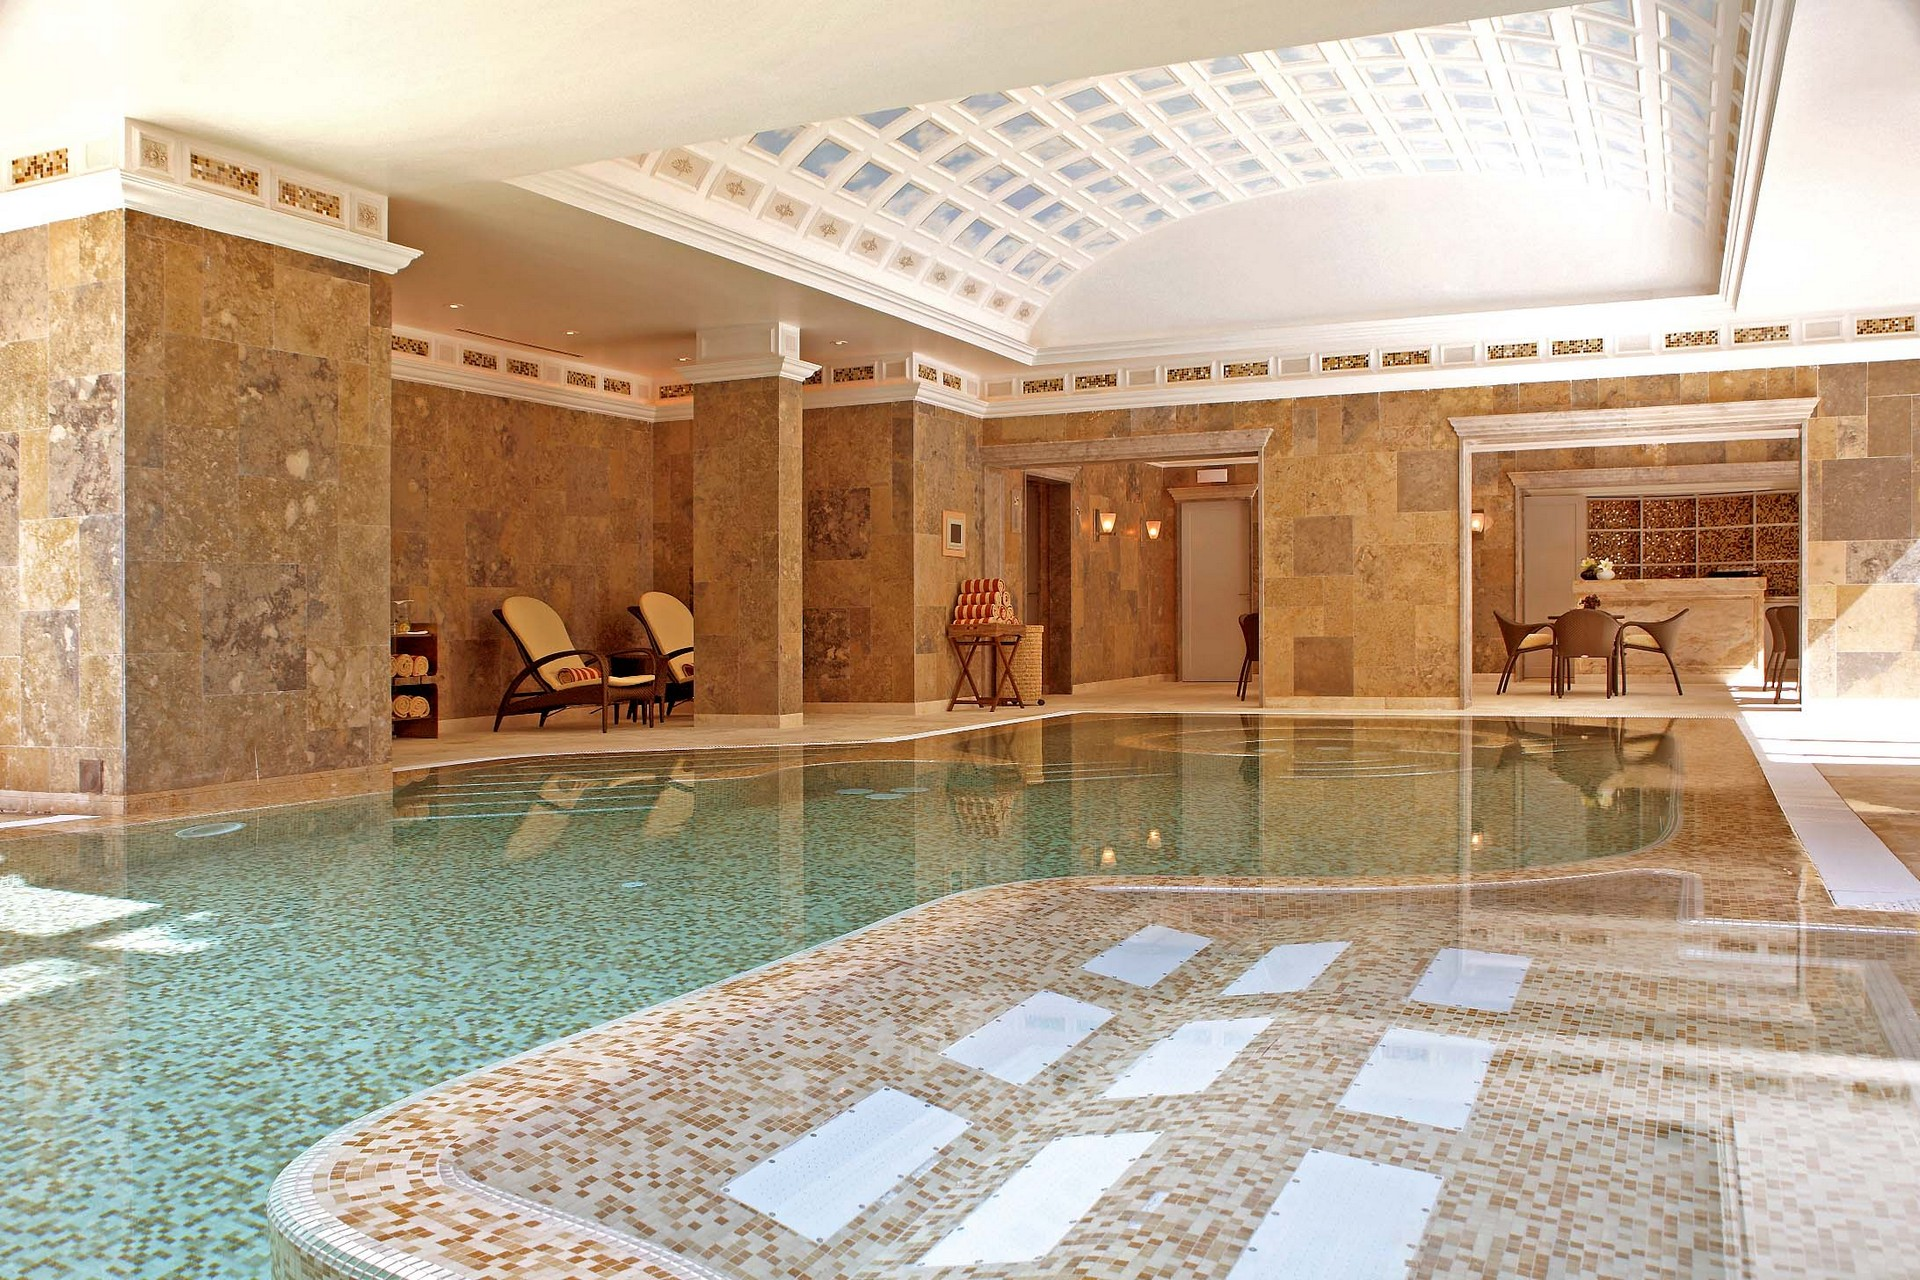 Best spas in Portugal: Real Spa Therapy what to do in lisbon What To Do In Lisbon: 48 Hours In The Capital Best spas in Portugal 9